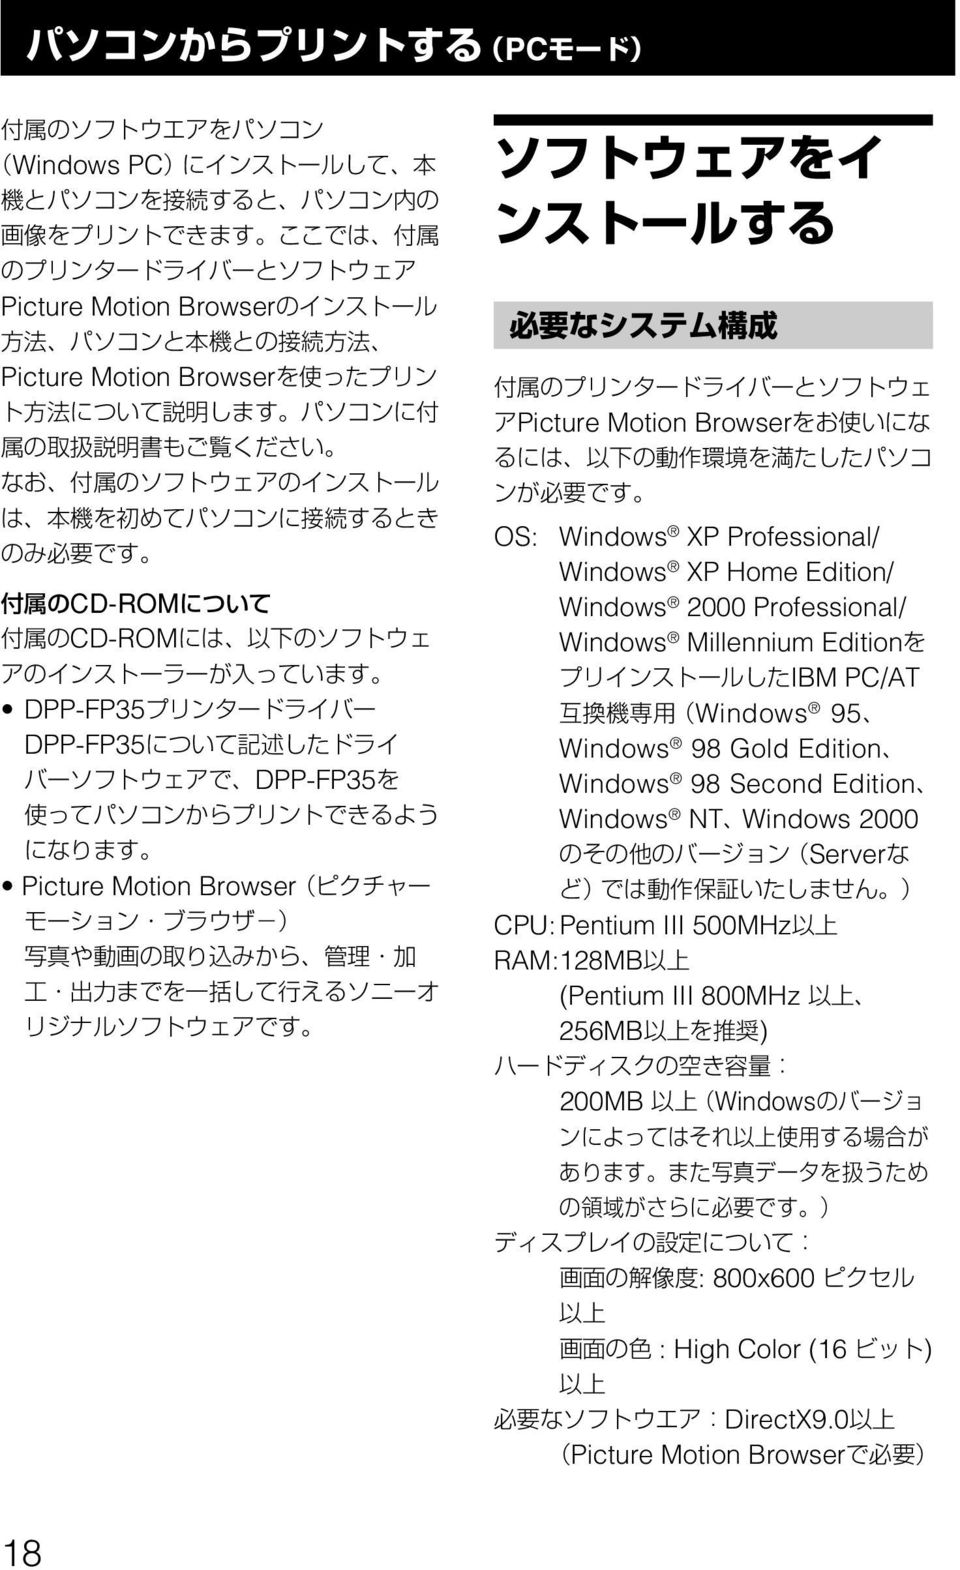 Edition IBM PC/AT Windows 95 Windows 98 Gold Edition Windows 98 Second Edition Windows NTWindows 2000 Server CPU: Pentium